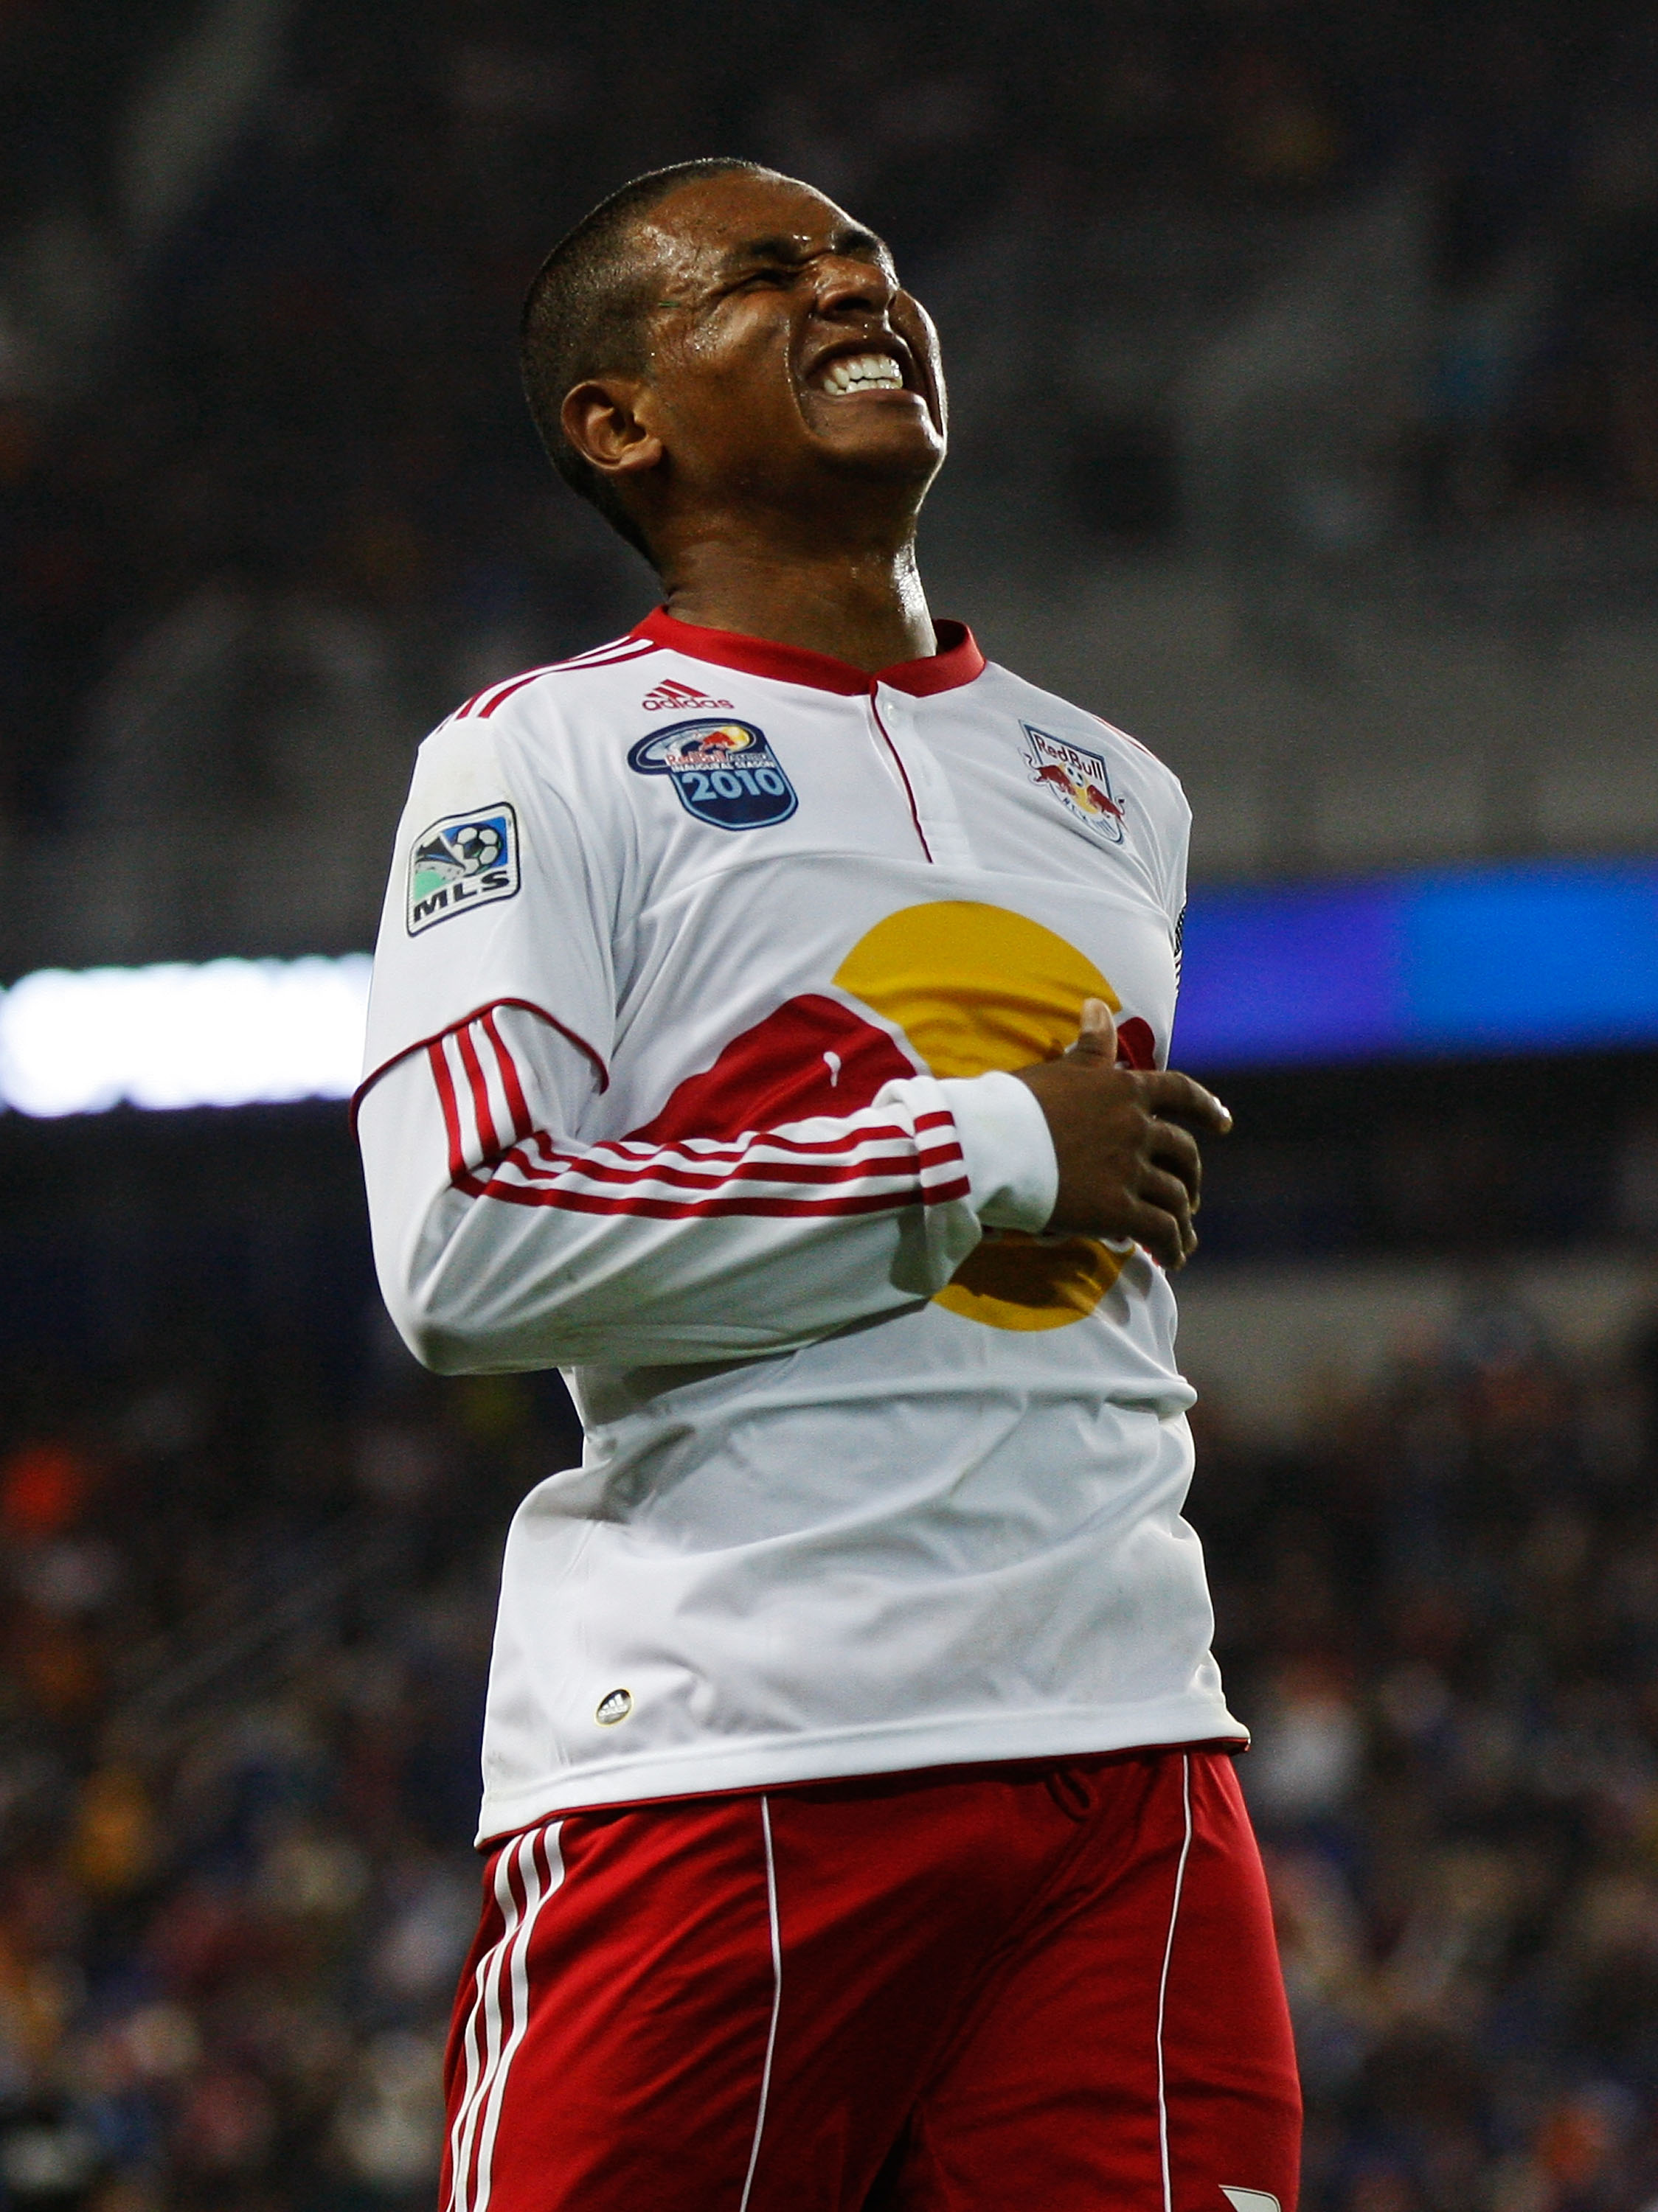 HARRISON, NJ - NOVEMBER 04:  Juan Agudelo #39 of the New York Red Bulls reacts after a missed scoring change against the San Jose Earthquakes during the 2nd Leg of the MLS playoffs on November 4, 2010 at Red Bull Arena in Harrison, New Jersey.  (Photo by